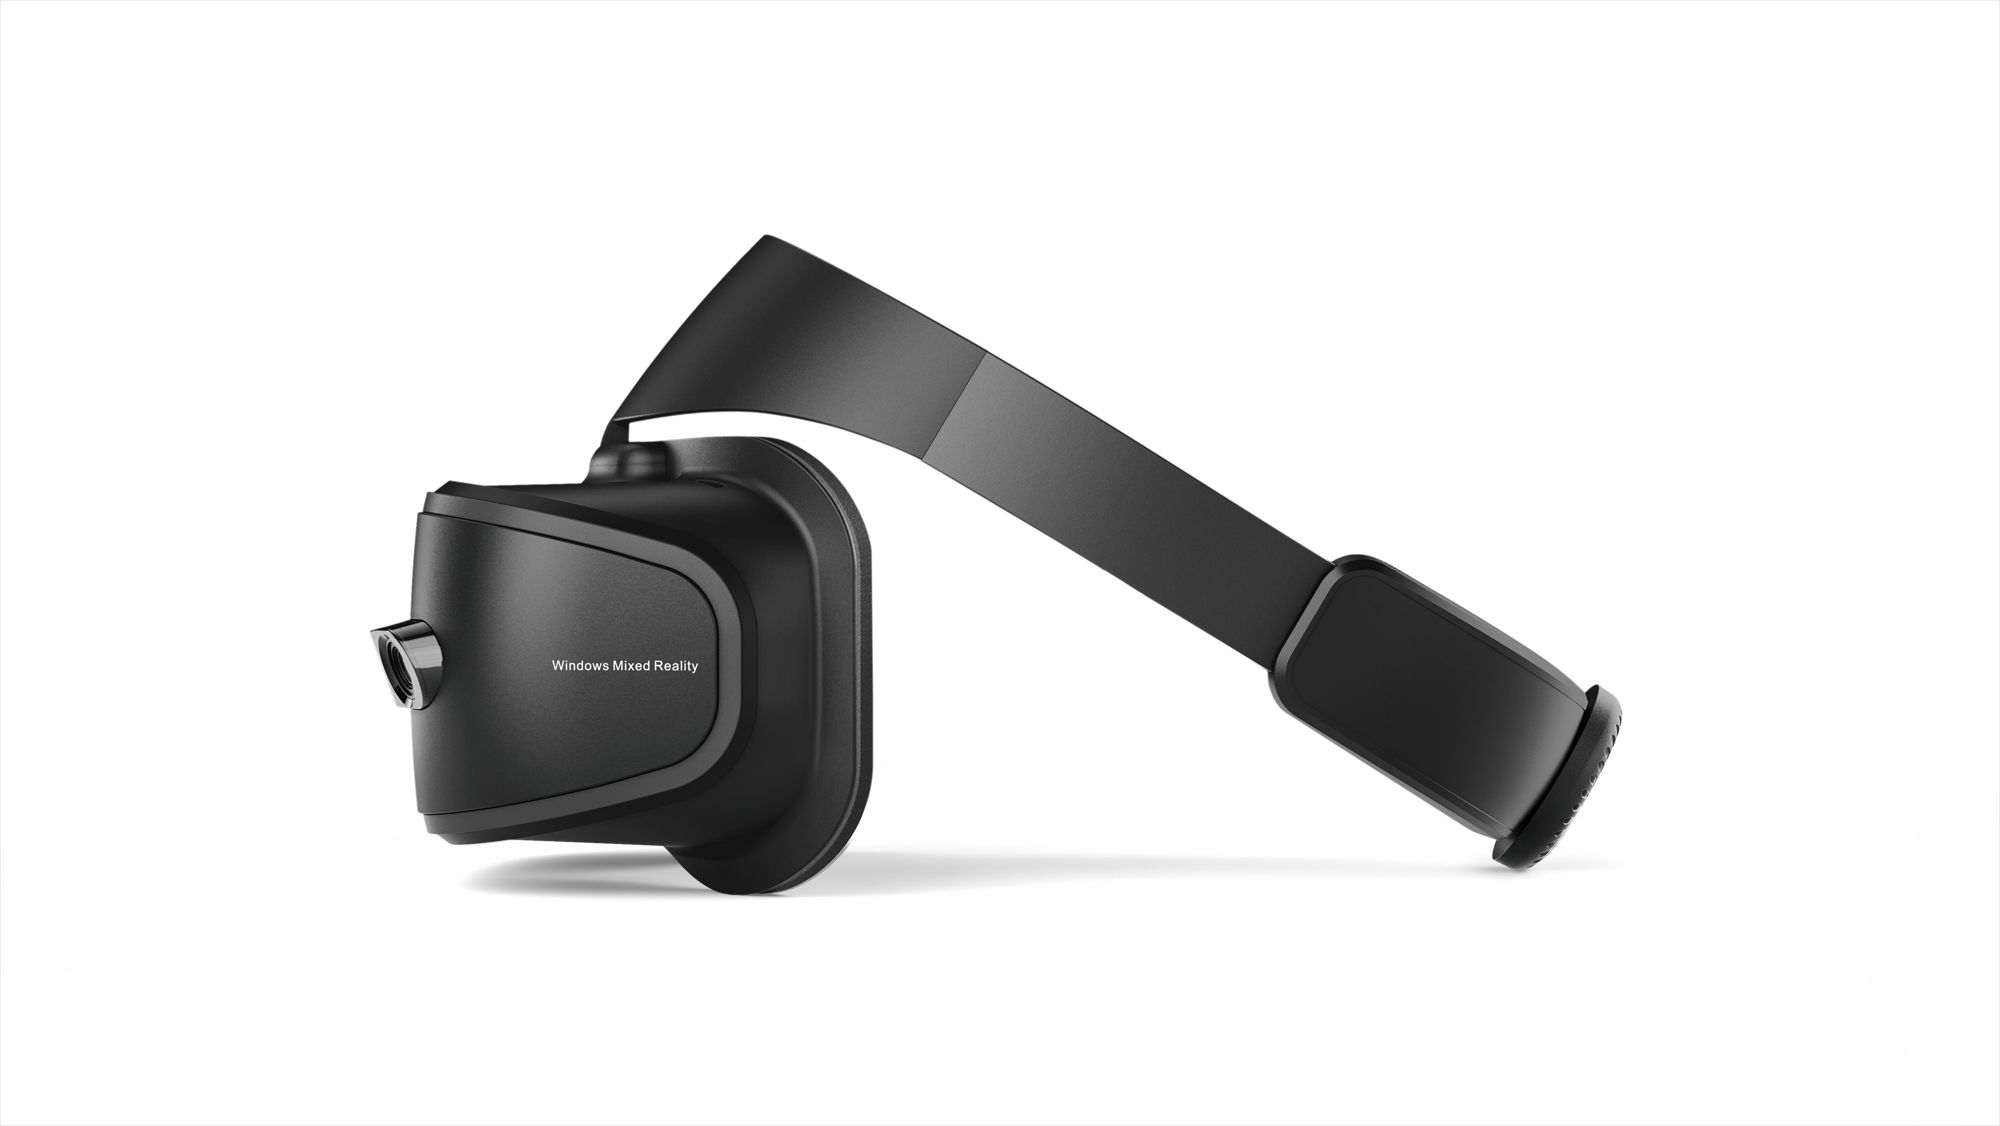 Lenovo's mixed reality headset offers built-in tracking for $350